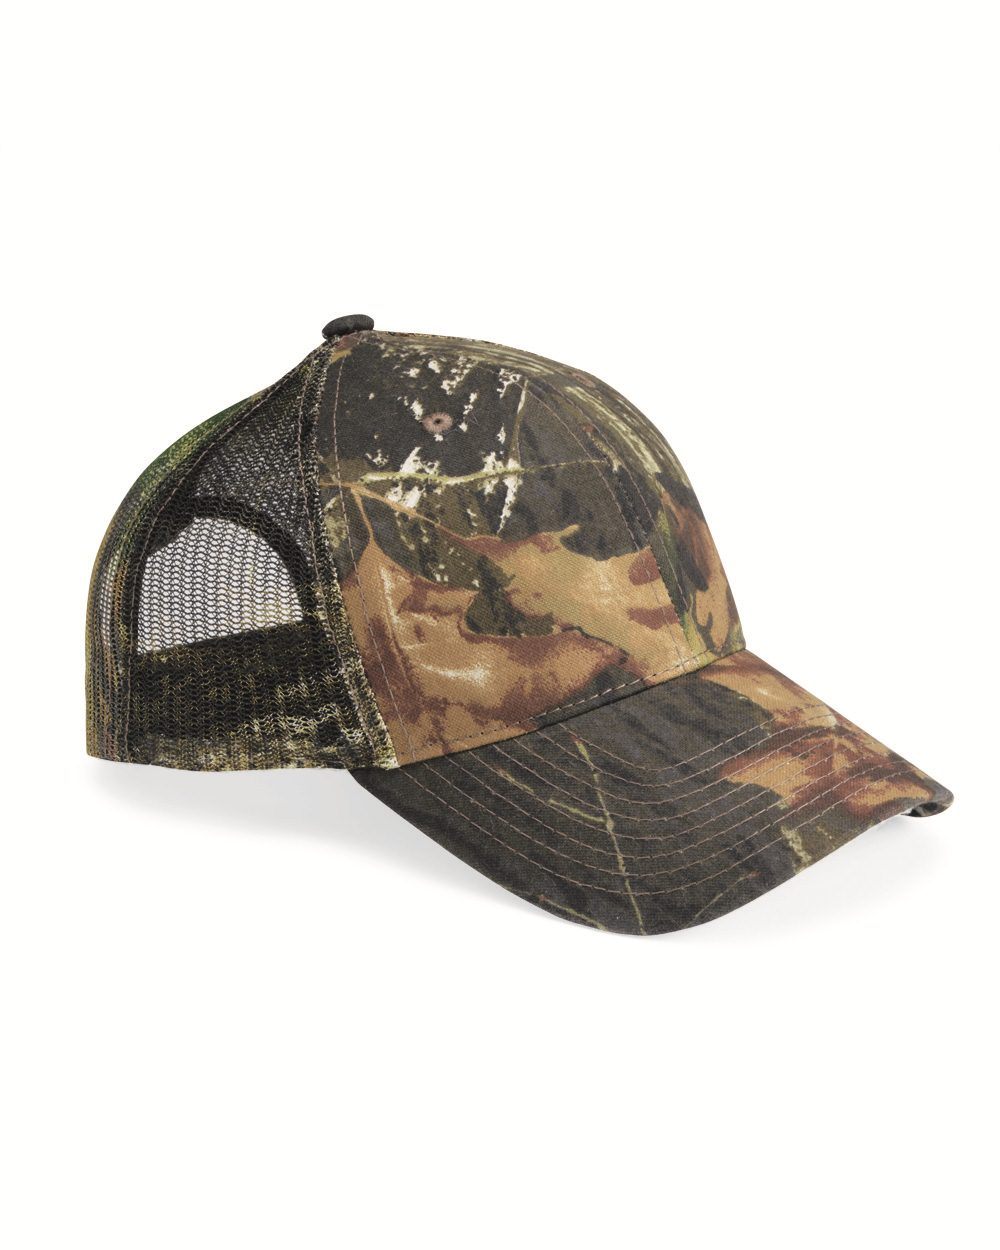 Outdoor Cap 315M Outdoor Cap Mesh Camo